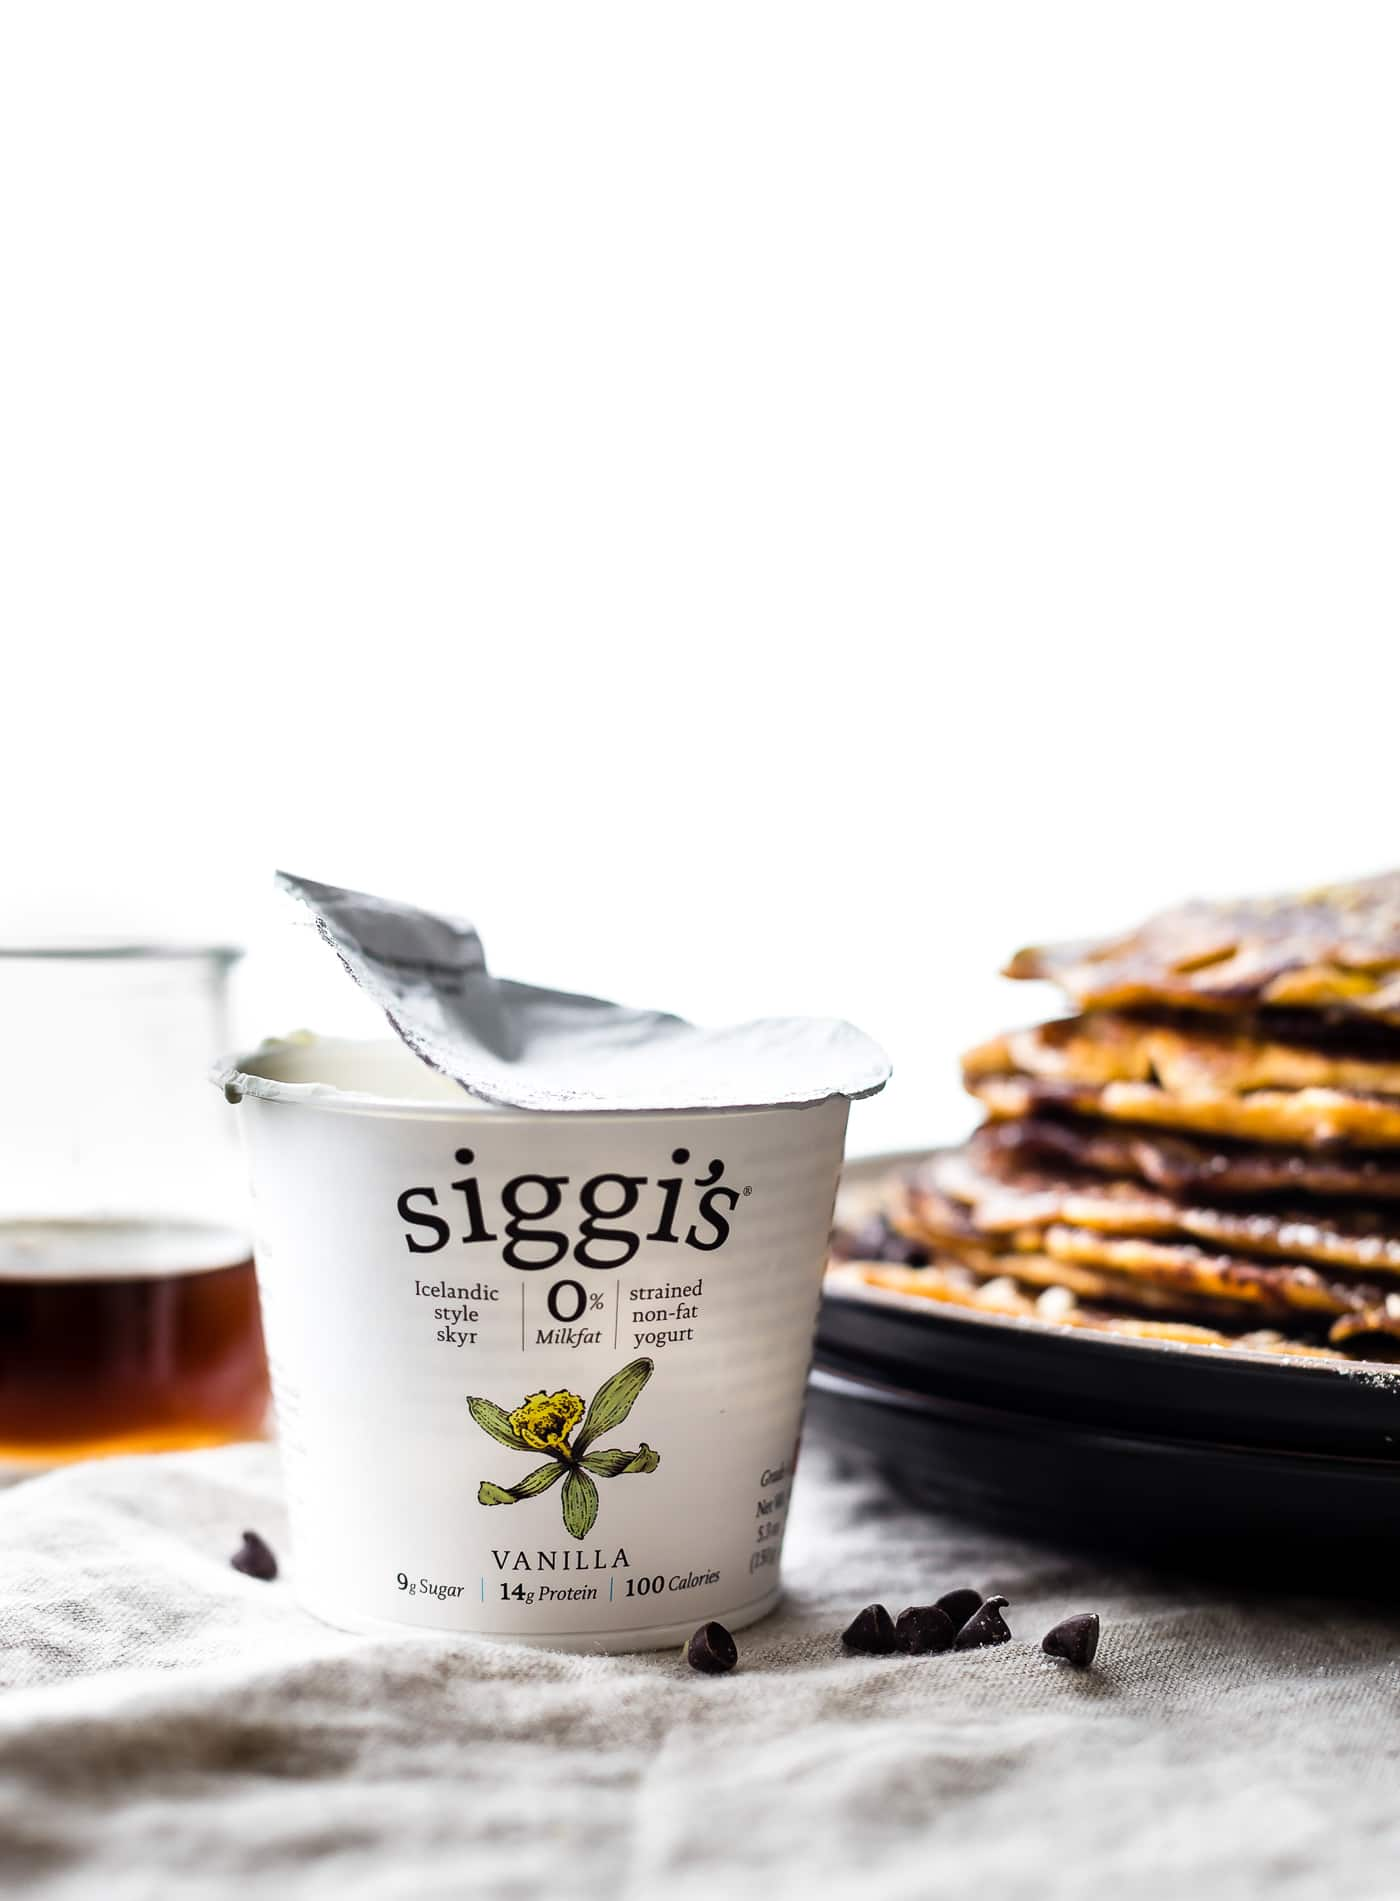 """A Flourless Carrot Cake Yogurt Pancakes recipe that's perfect for breakfast or brunch. These Flourless Carrot """"Cake"""" Yogurt Pancakes are too good to be true! Made with siggi's vanilla yogurt, making them lower in sugar, gluten free, and protein packed! An easy blender recipe. @siggisdairy #sponsored"""